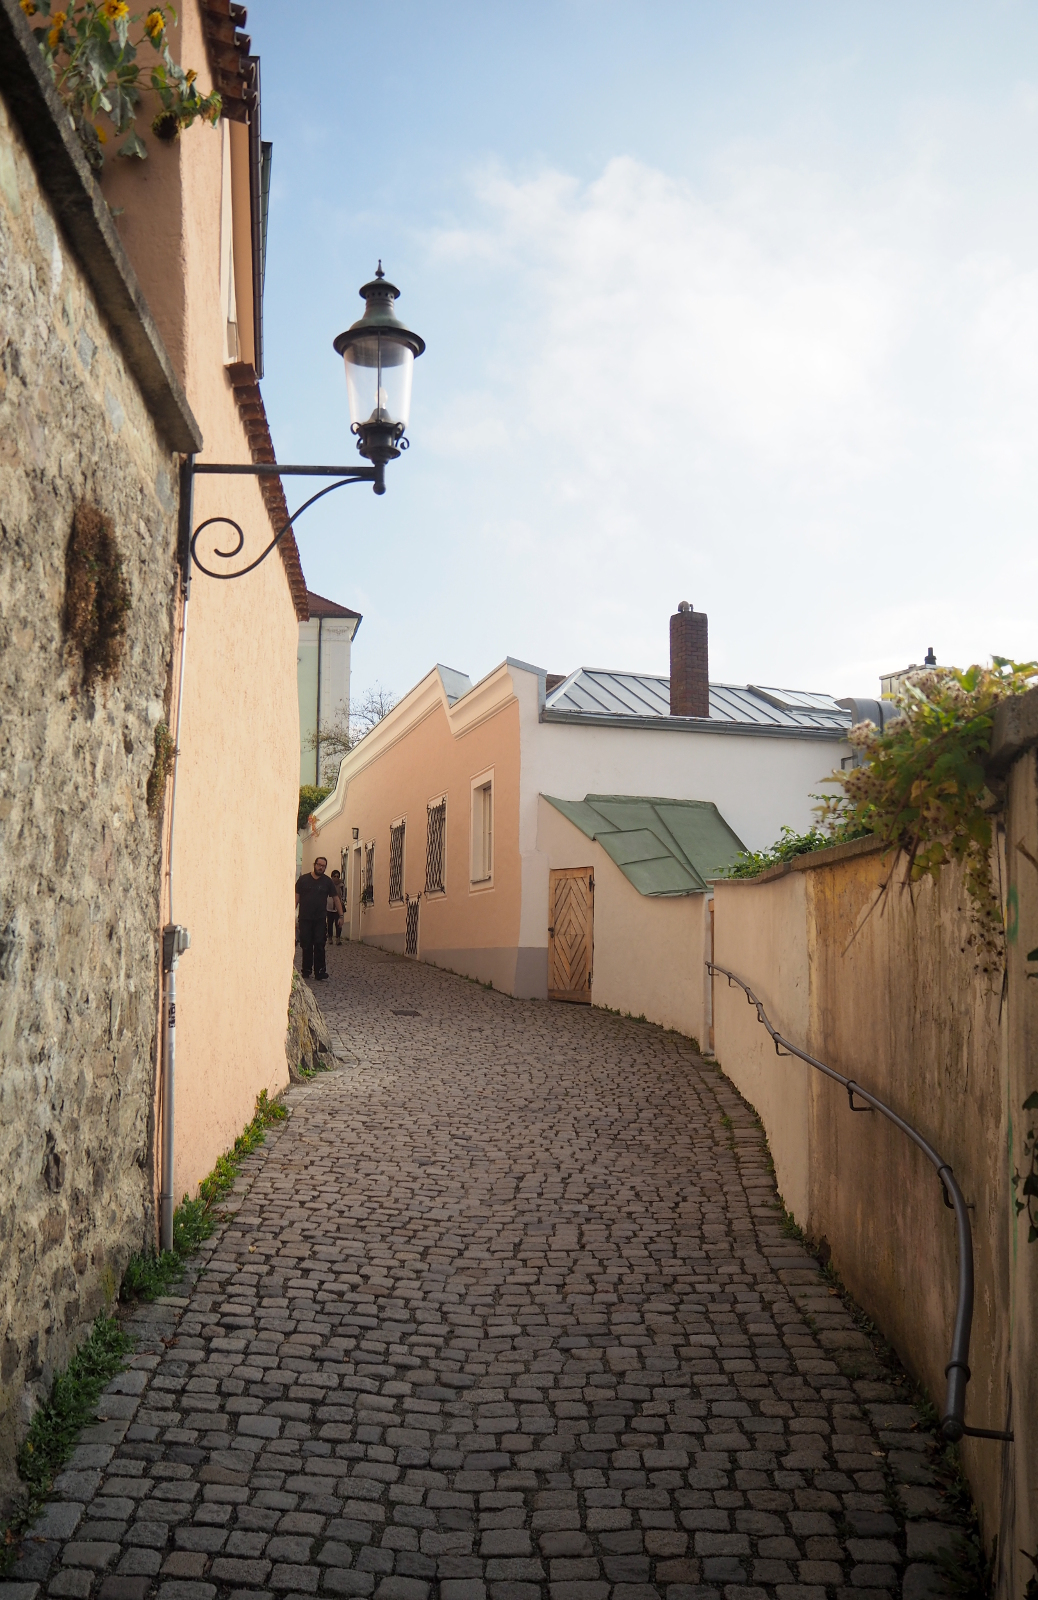 Alley in German town